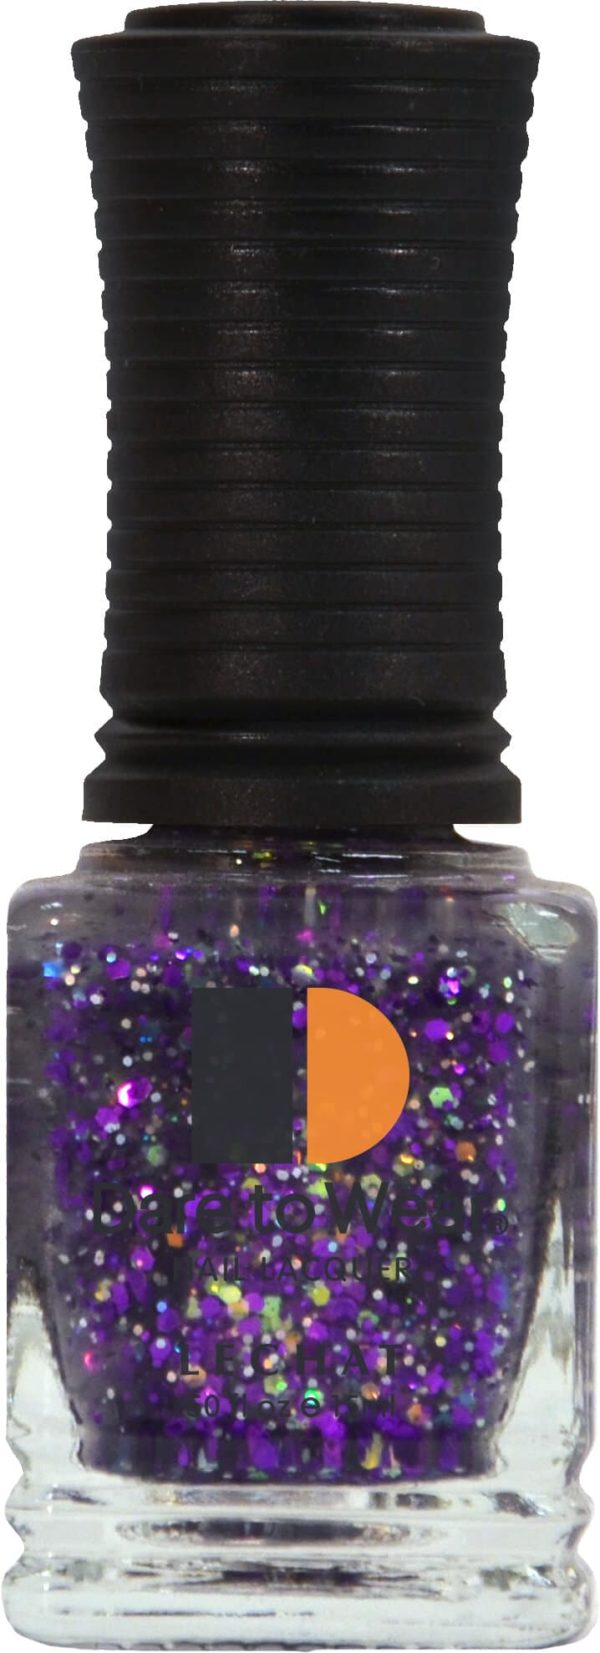 half fluid ounce bottle of purple and glitter lacquer.